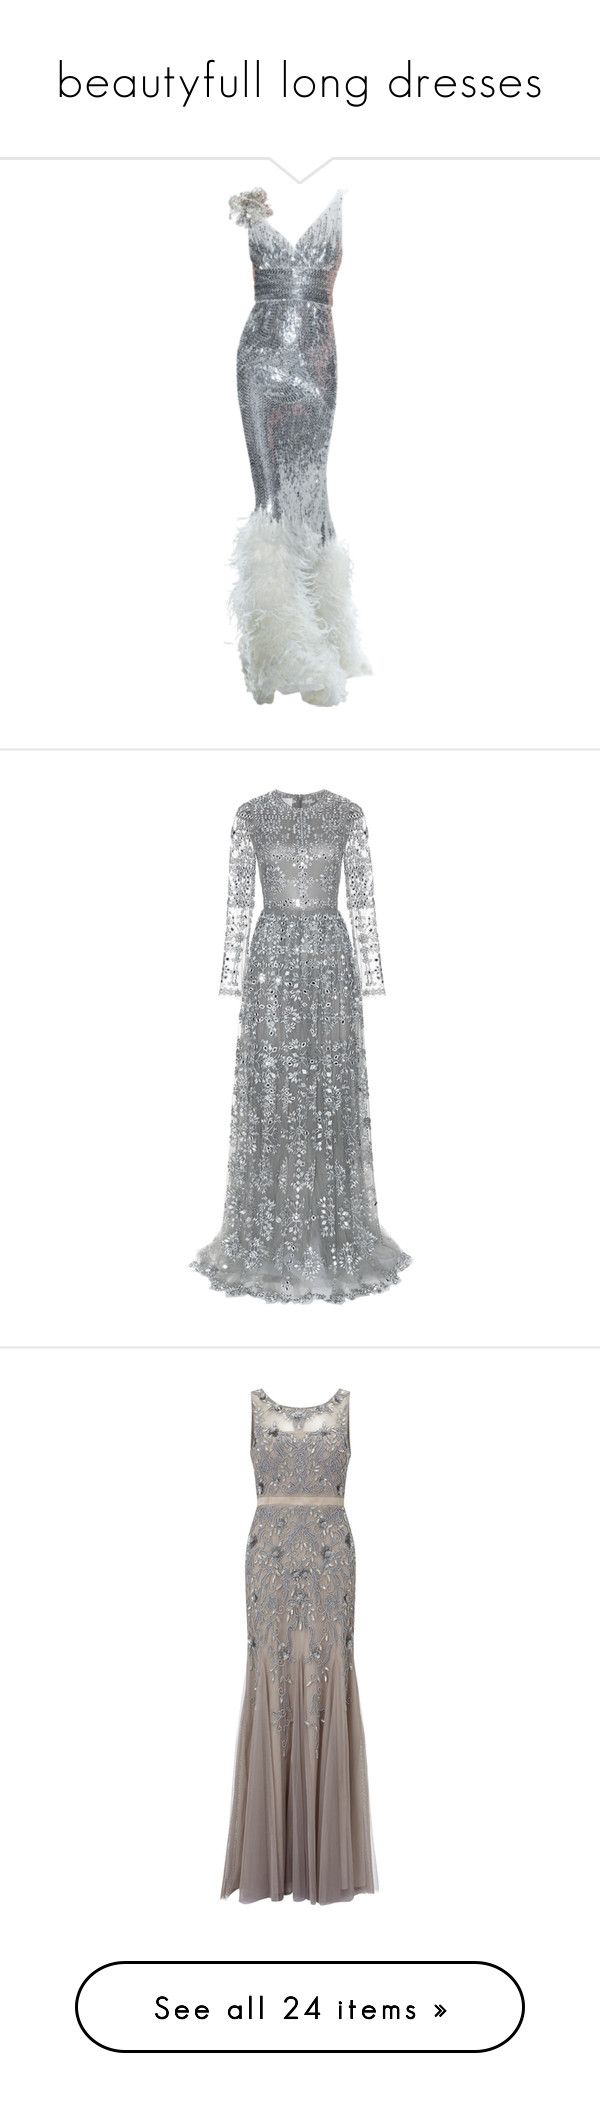 """beautyfull long dresses"" by sassi-mueller ❤ liked on Polyvore featuring dresses, gowns, long dresses, evening gowns, paillette dress, naeem khan gown, ostrich feather dress, metallic long dress, metallic dress and valentino"